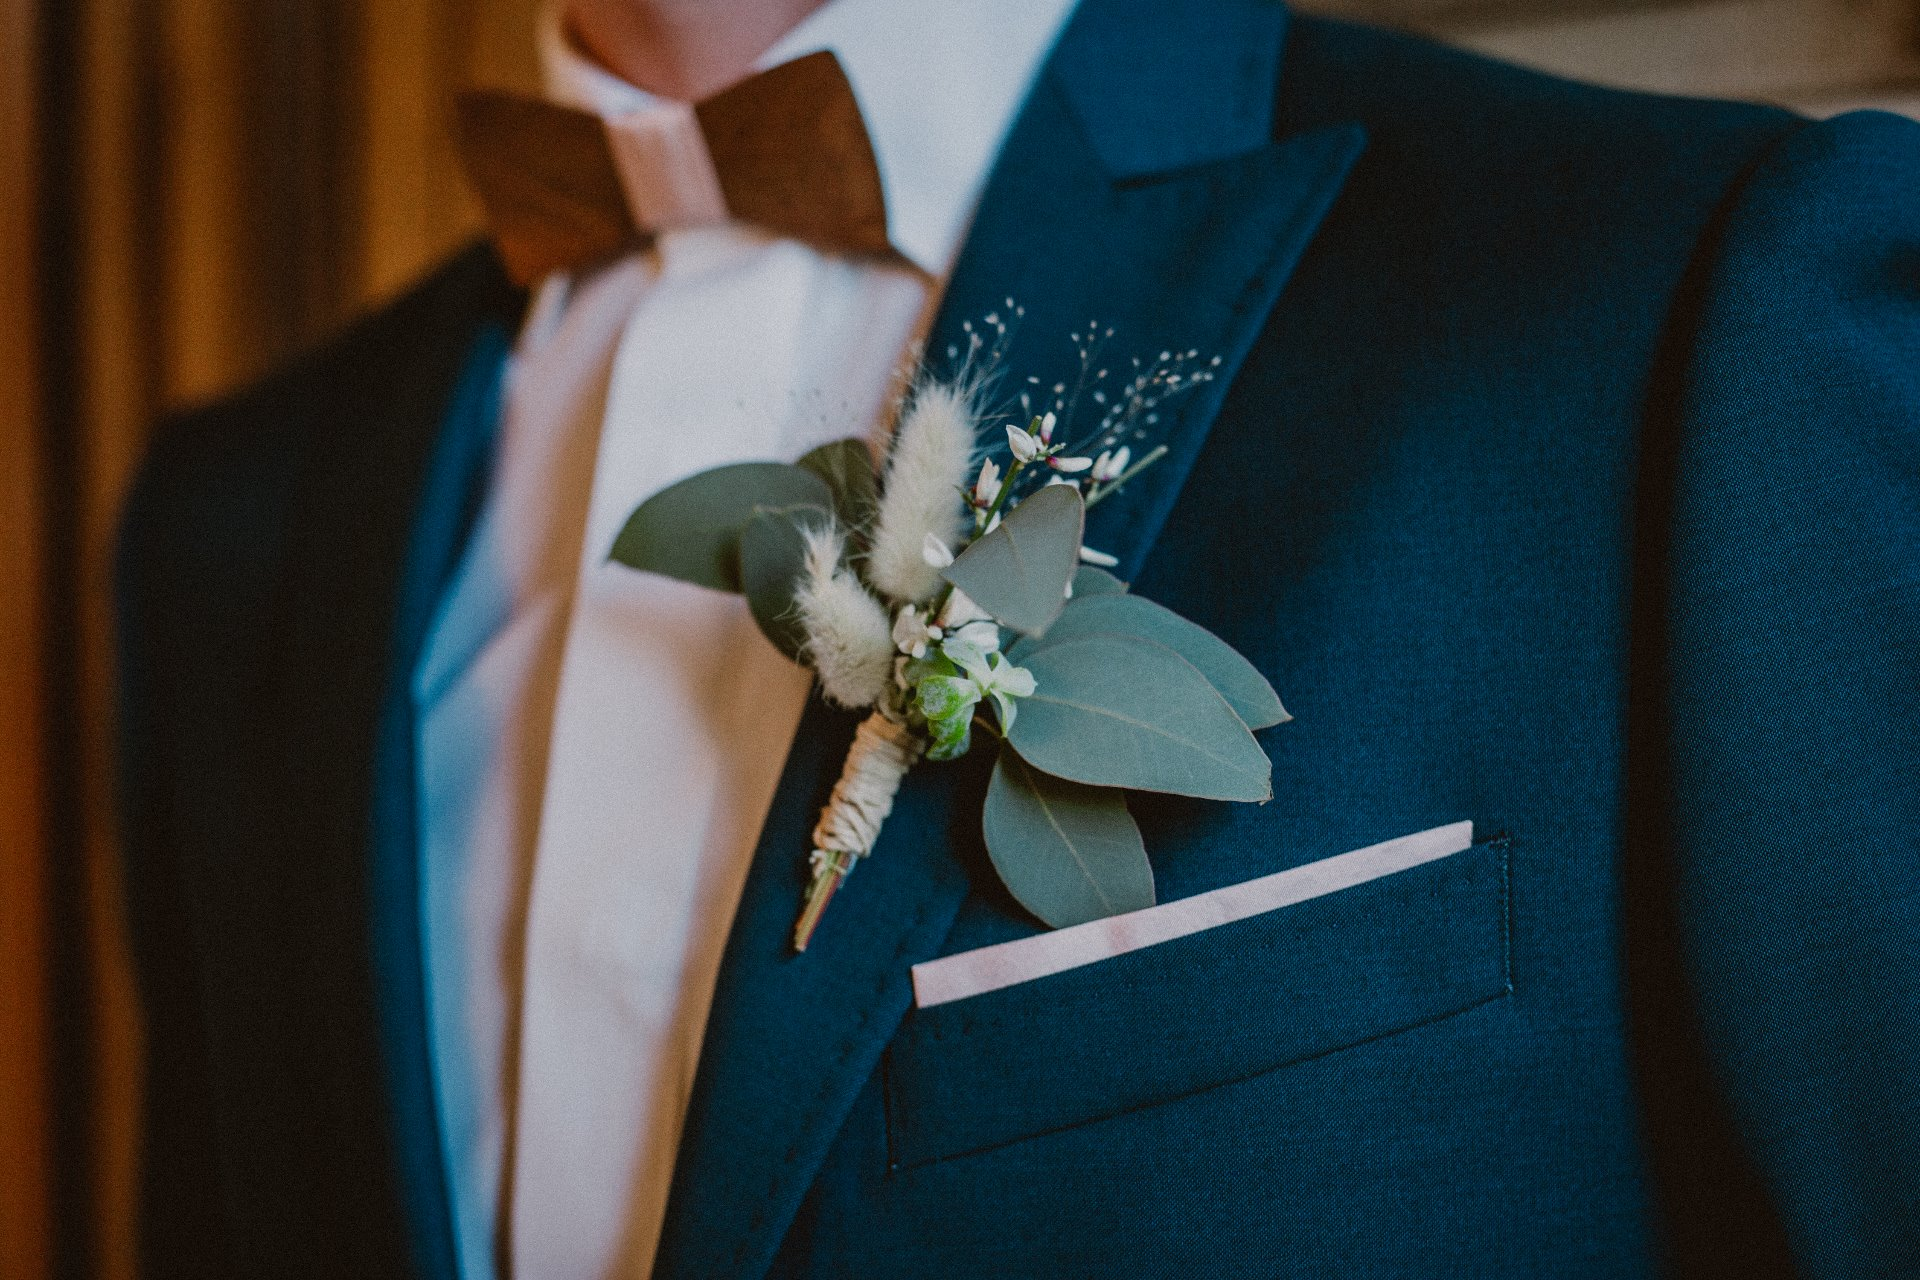 sterenn-officiante-ceremonie-laique-boutonniere-marie-257